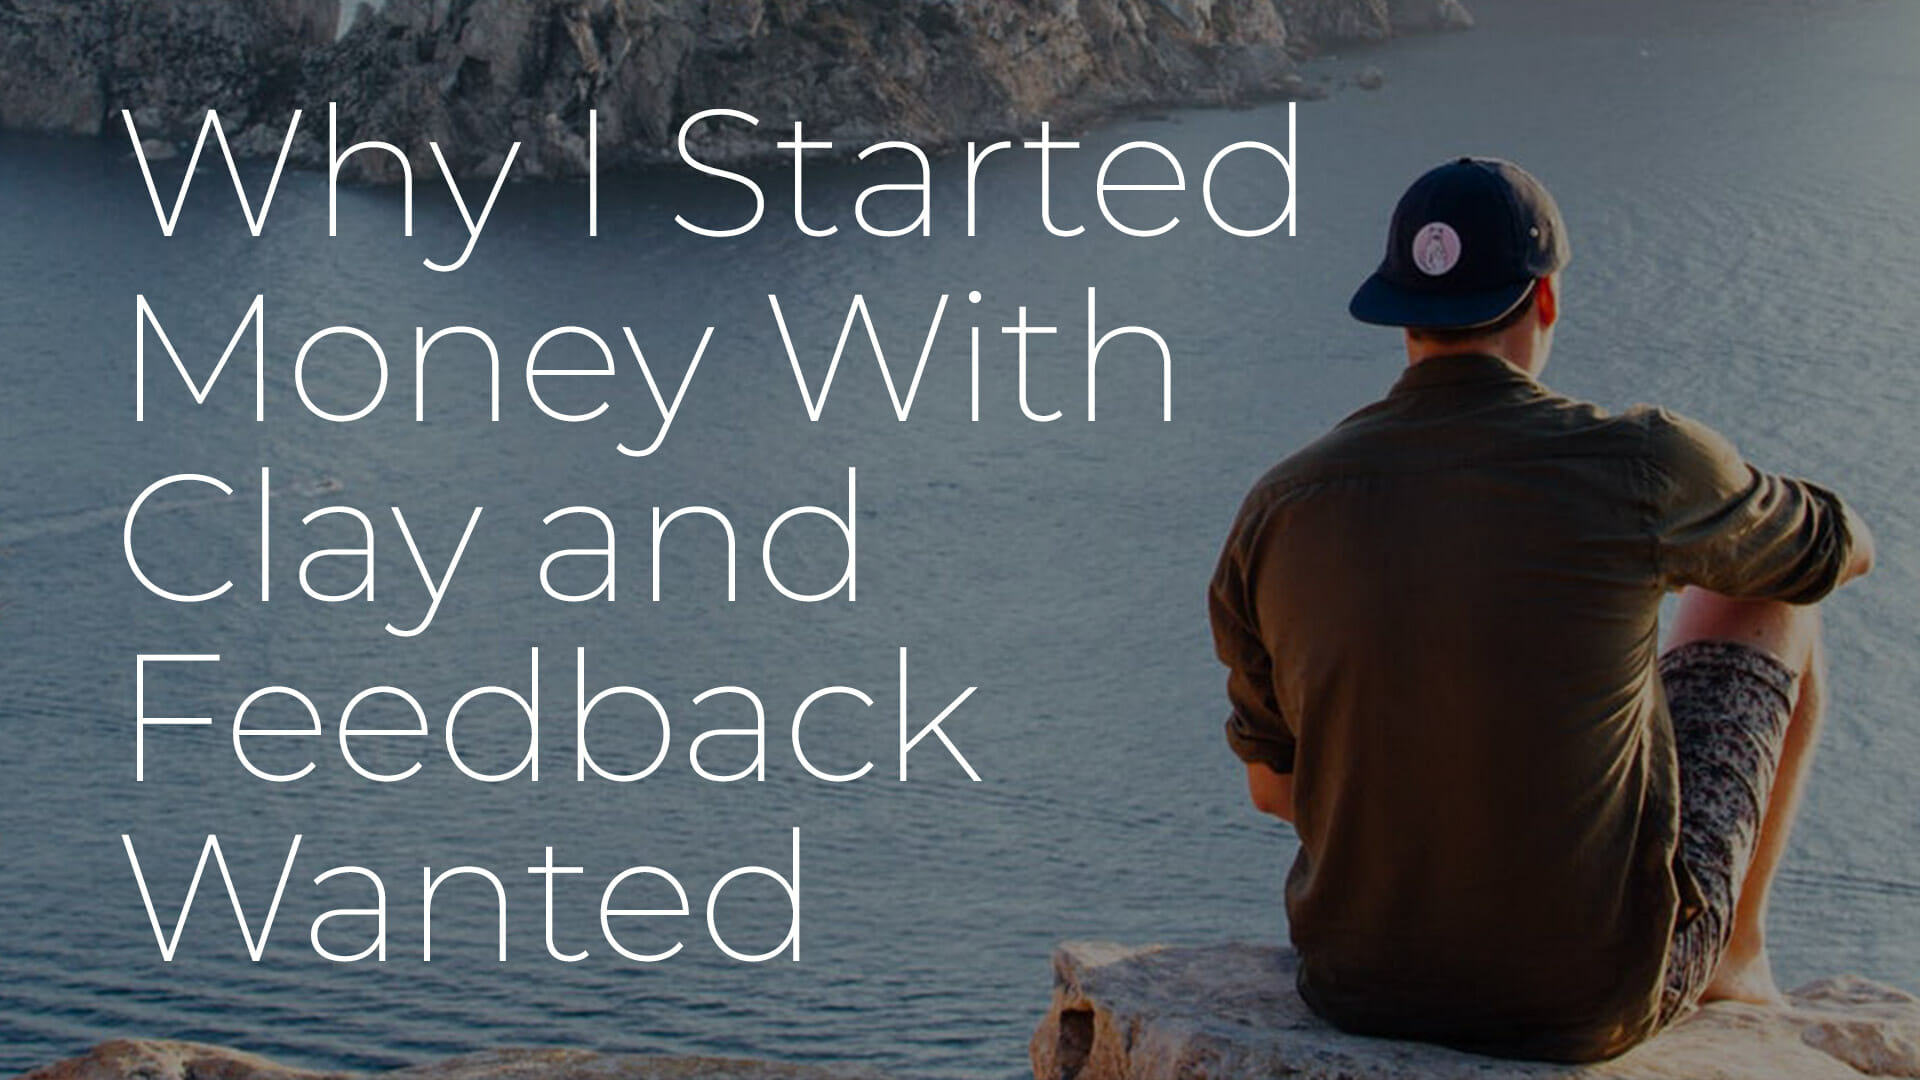 Why I Started MoneyWithClay.com and Feedback Wanted